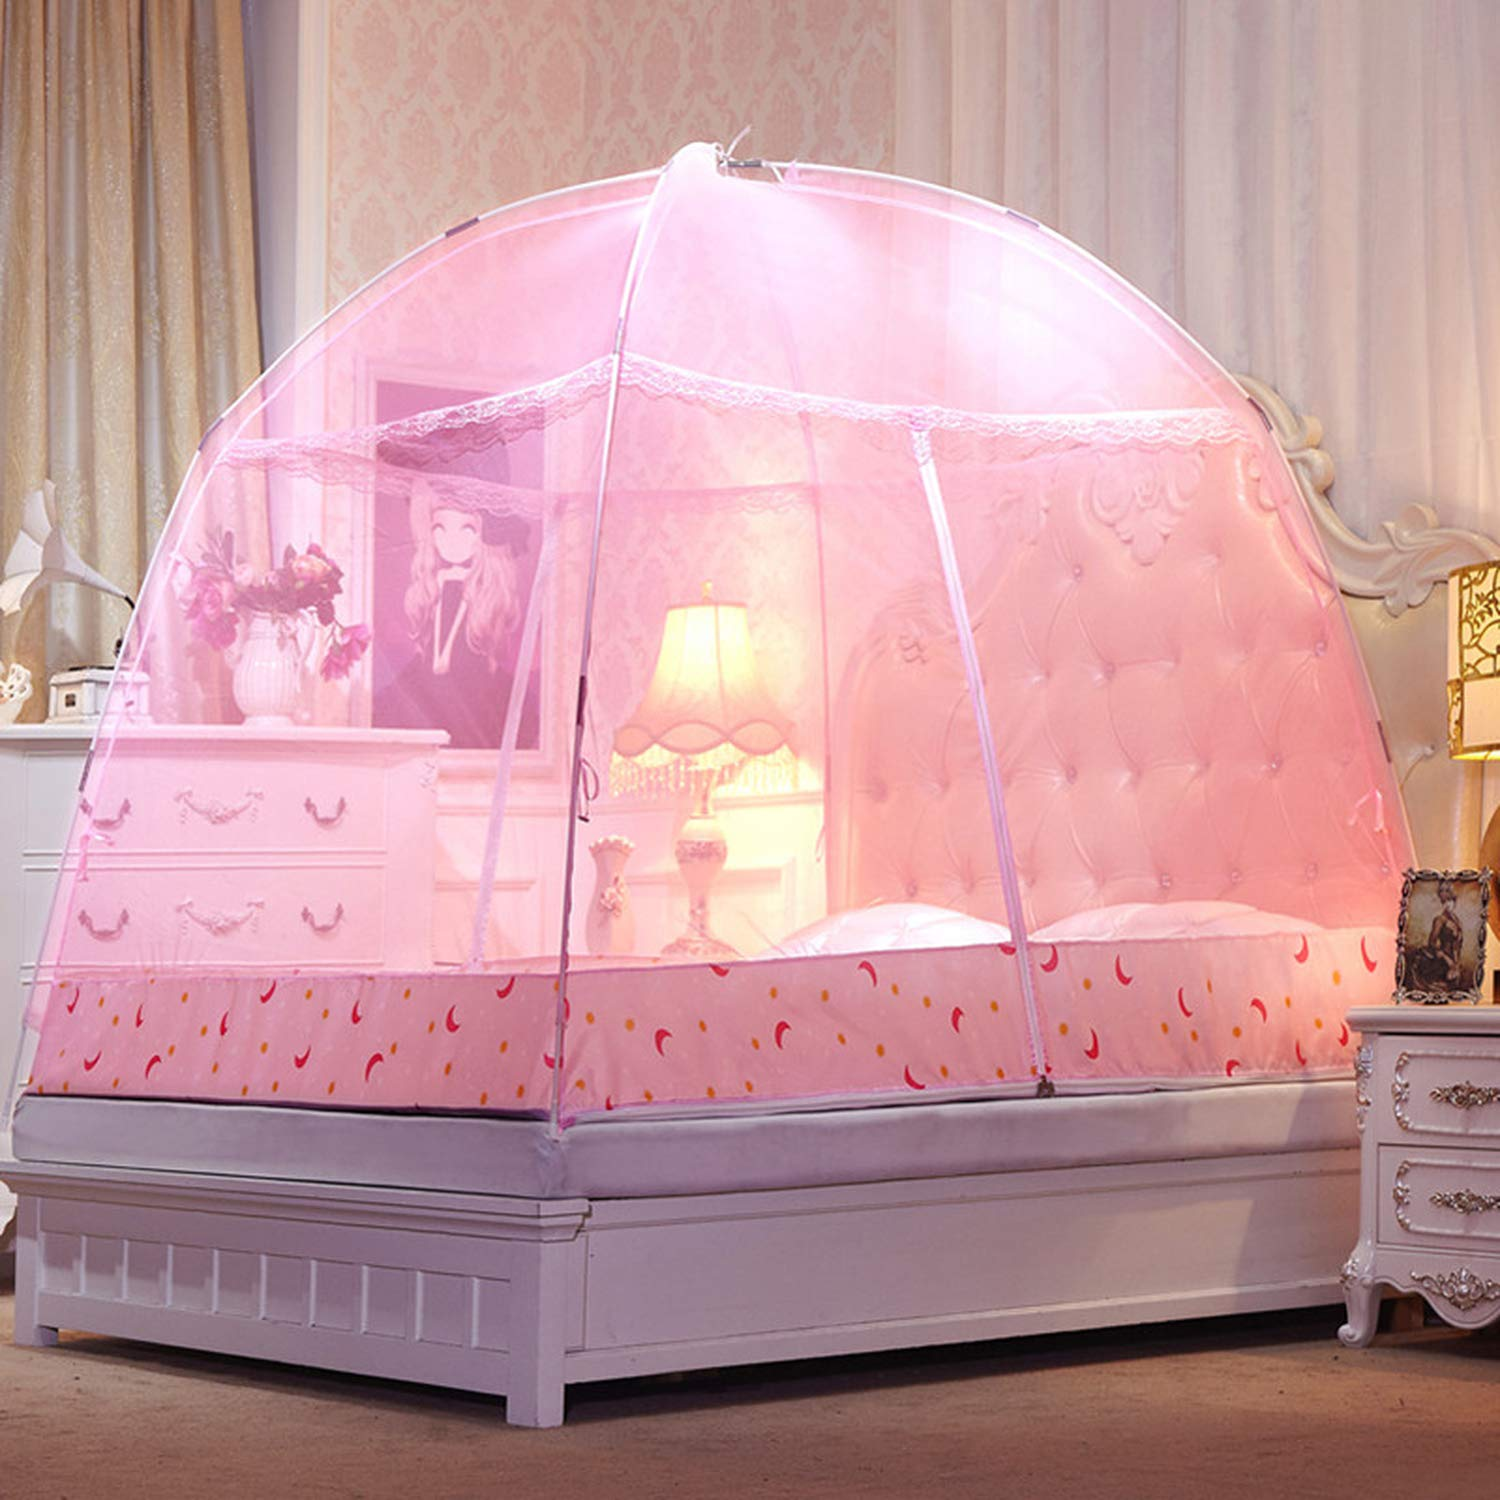 Romantic Purple Dome Mosquito Net Double Door Polyester Fabric Bed Netting Canopy Mosquito Netting Folding Netting Tent Bed,White,1.5m (5 feet) Bed by SuWuan mosquito net (Image #4)